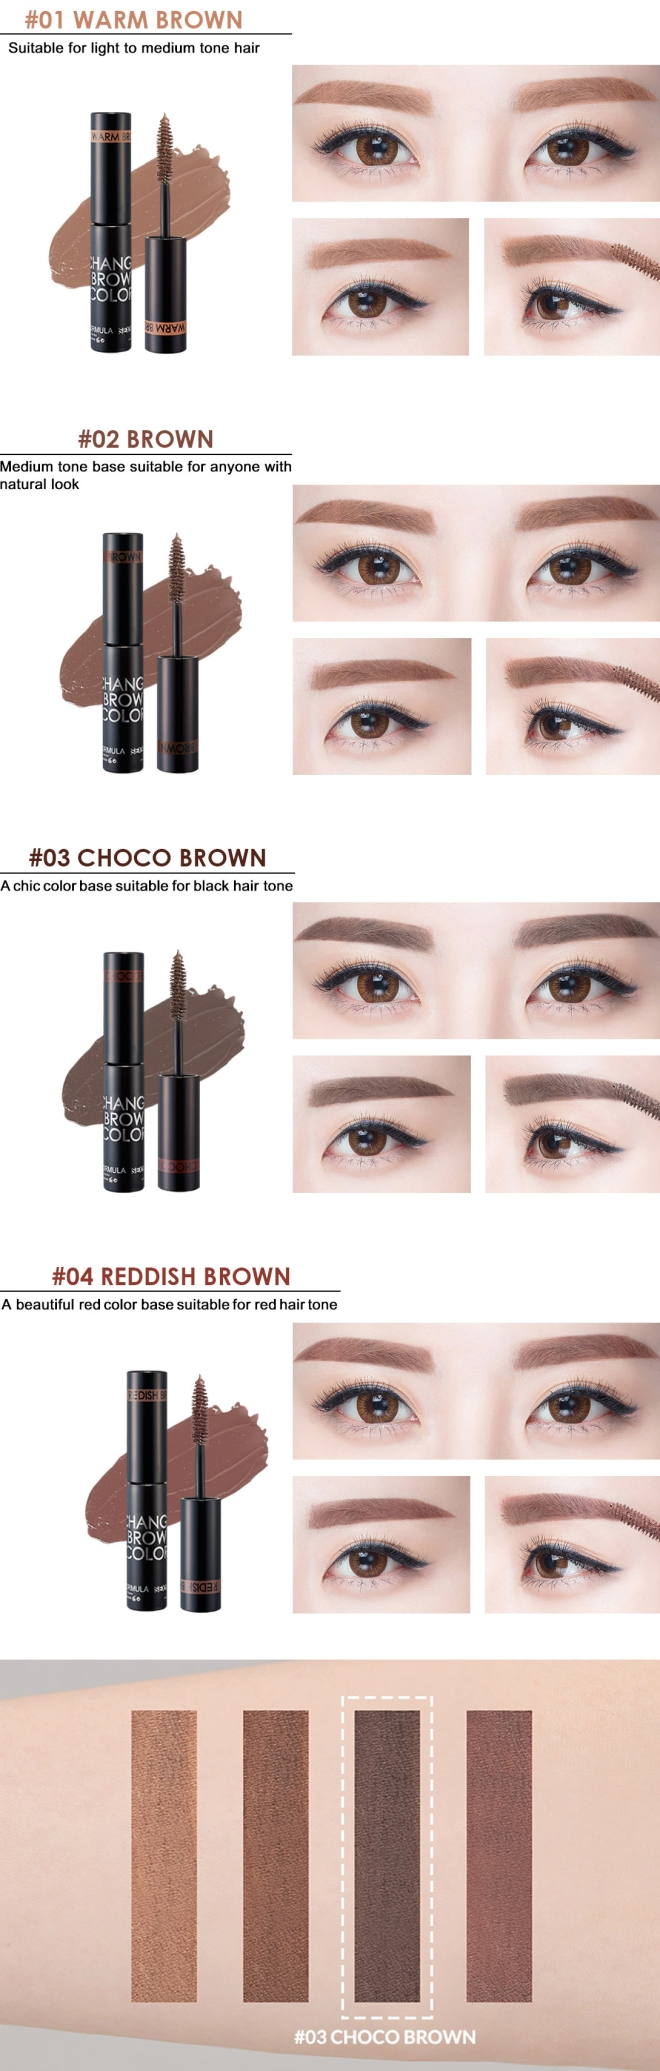 Change Brow Color (Info 02)